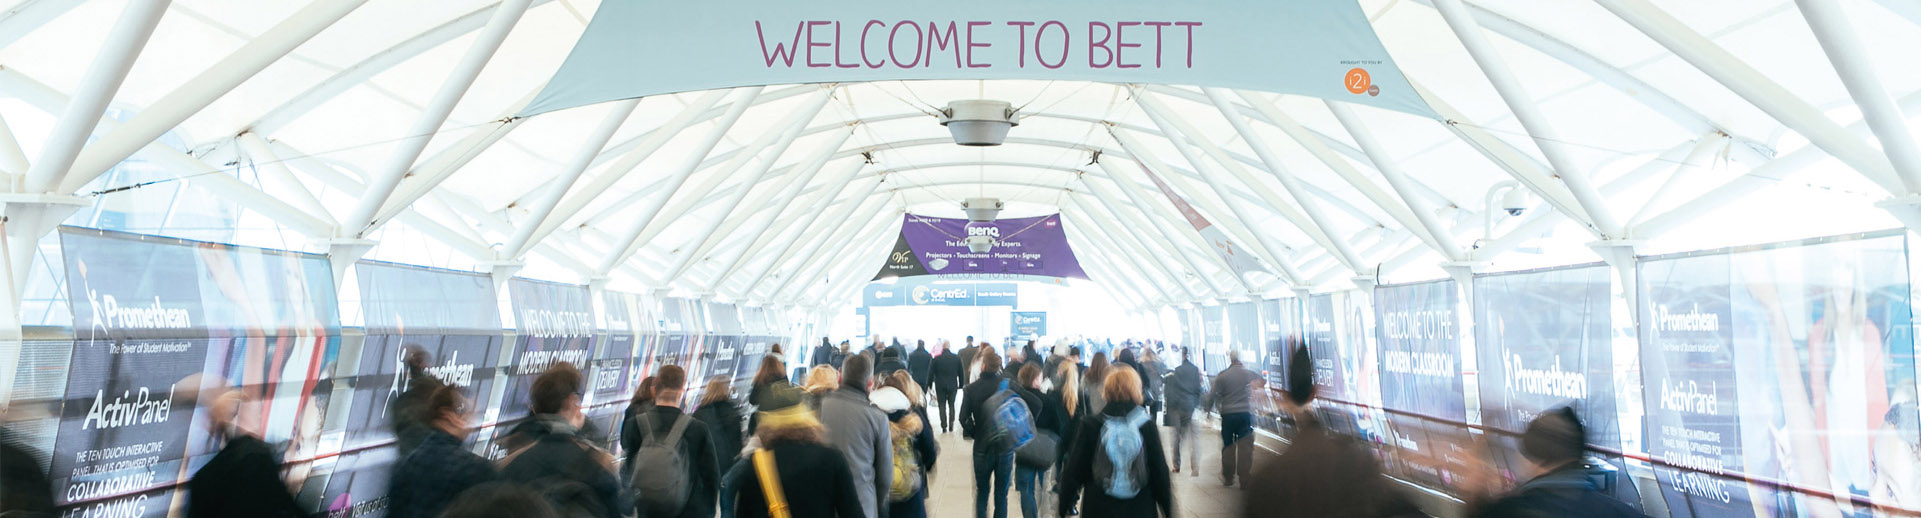 AV and LED Screens Hire for BETT at ExCeL, London